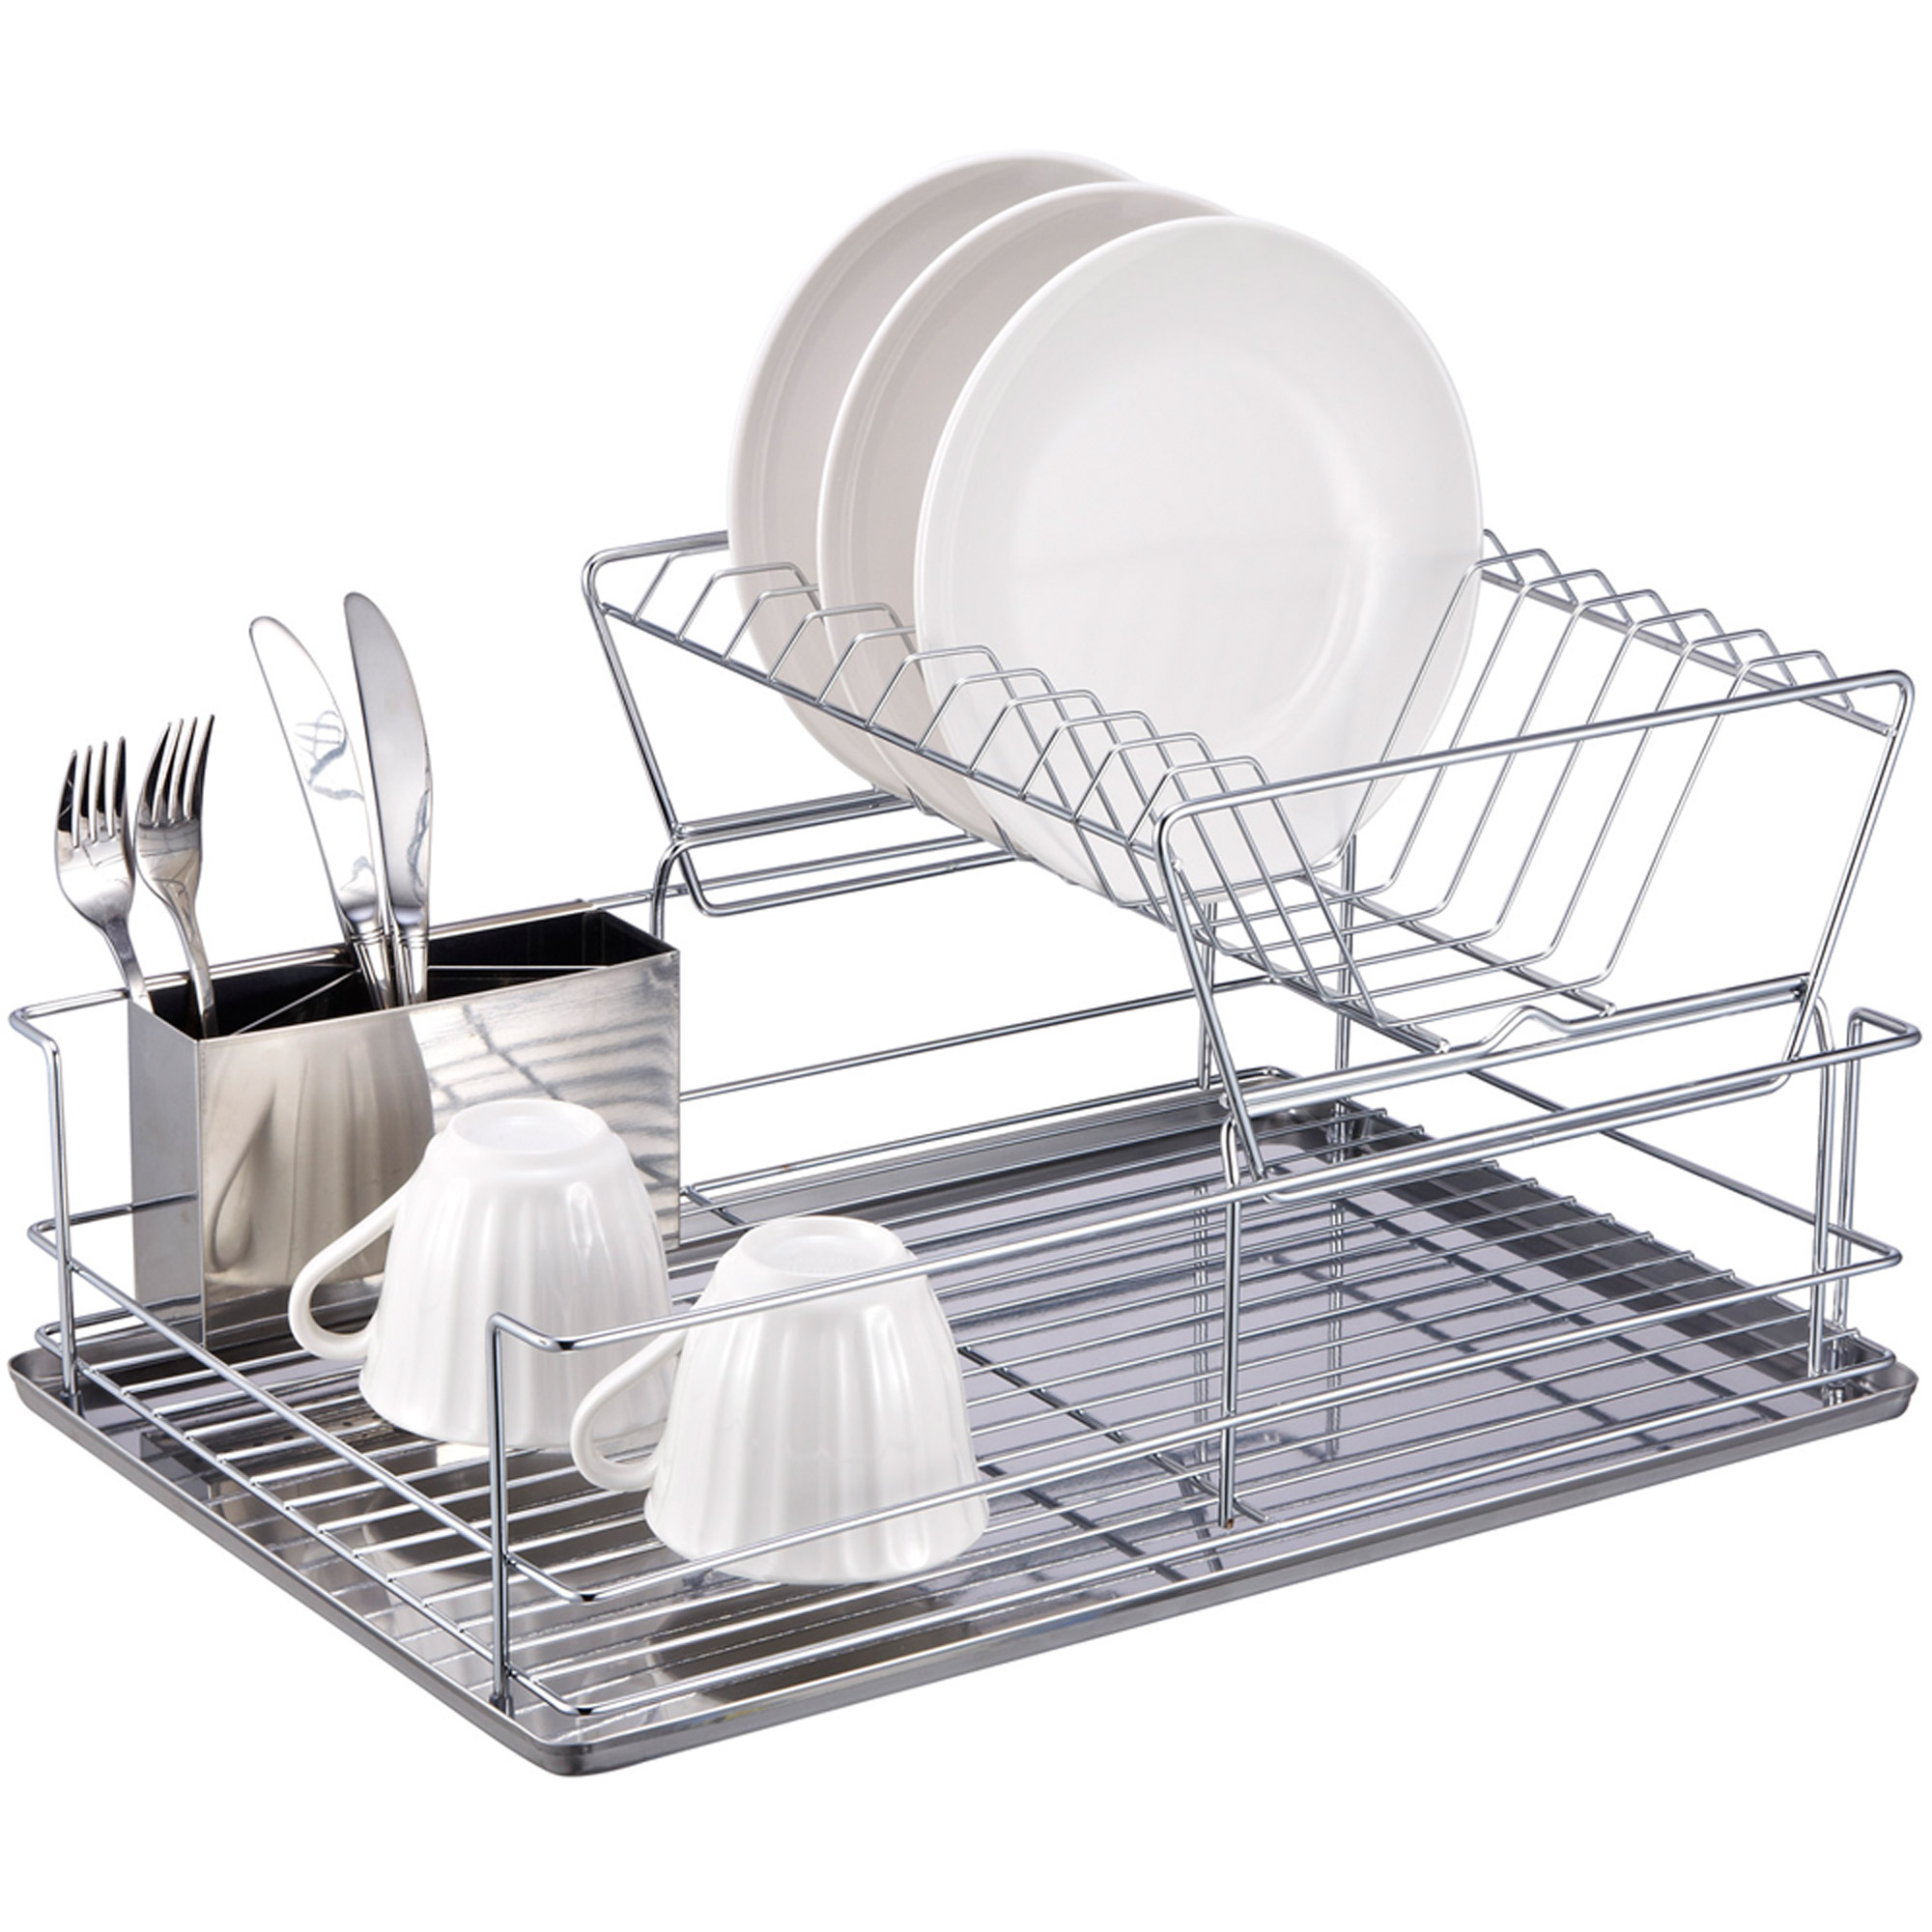 Home Basics 2 Tier Dish Rack, Chrome/Stainless Steel